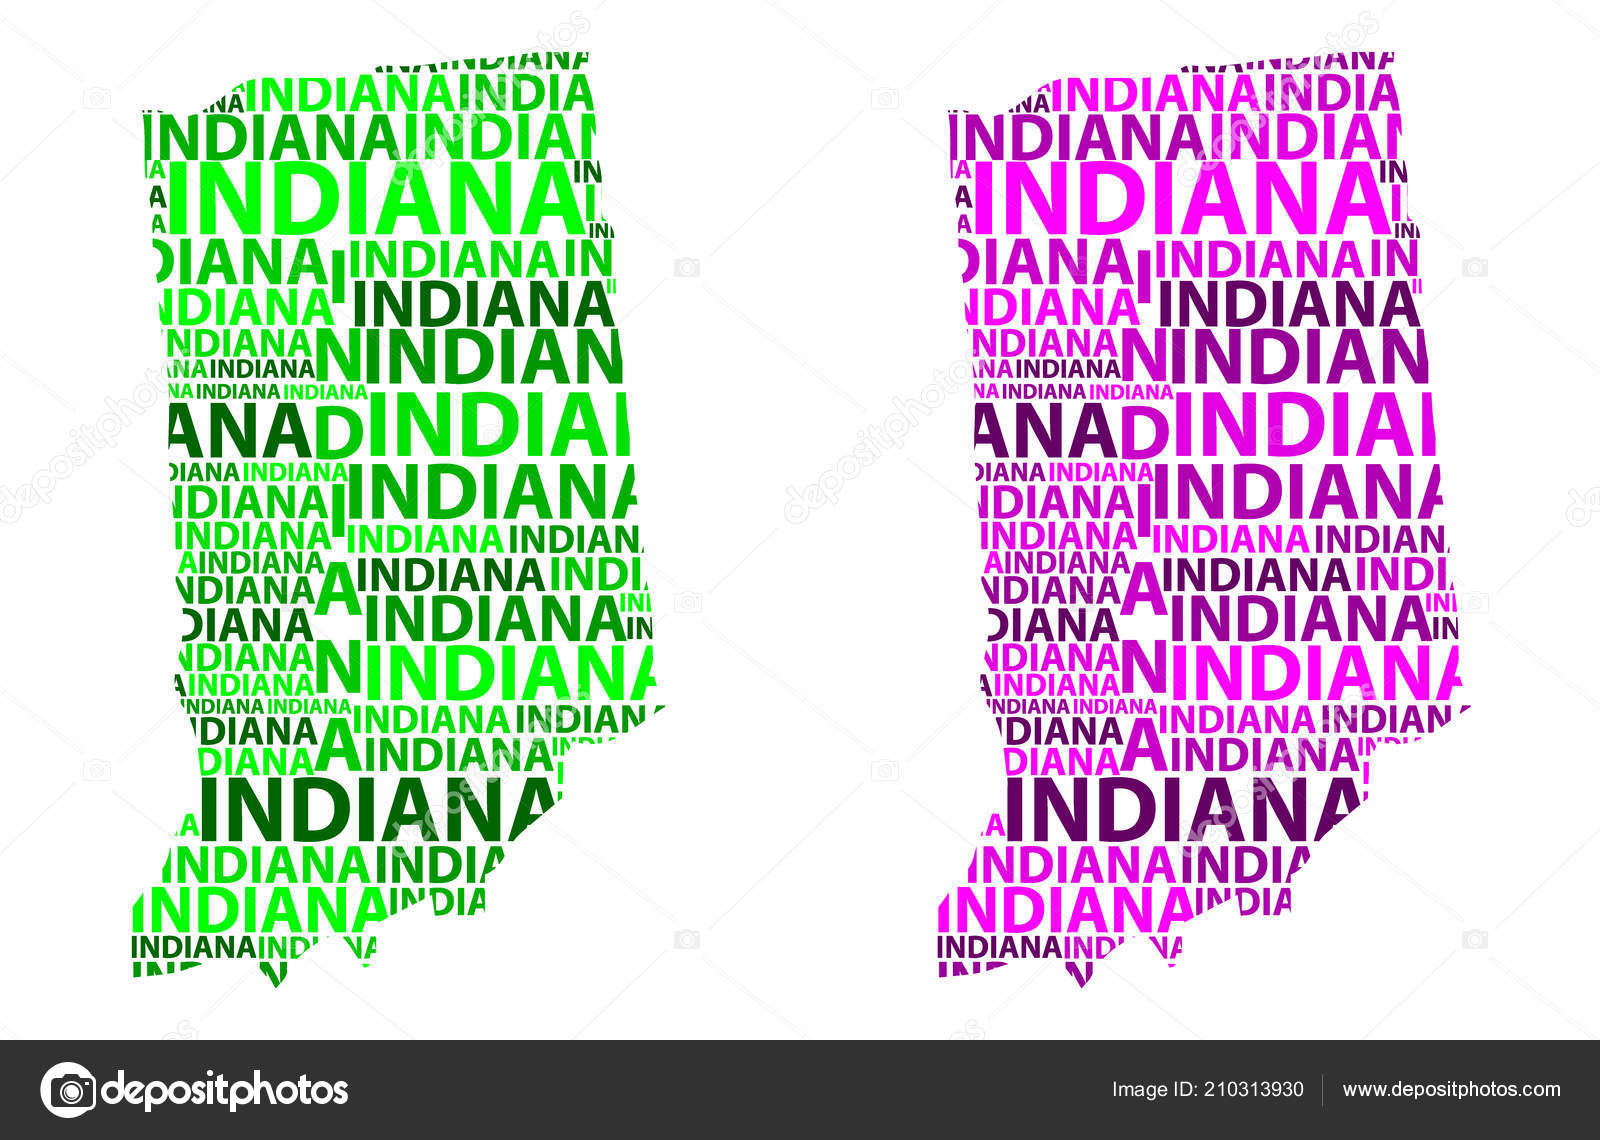 Sketch Indiana United States America Hoosier State Letter ... on stereotypes of states in america, on a map of stereotypes america, stereotypical america,